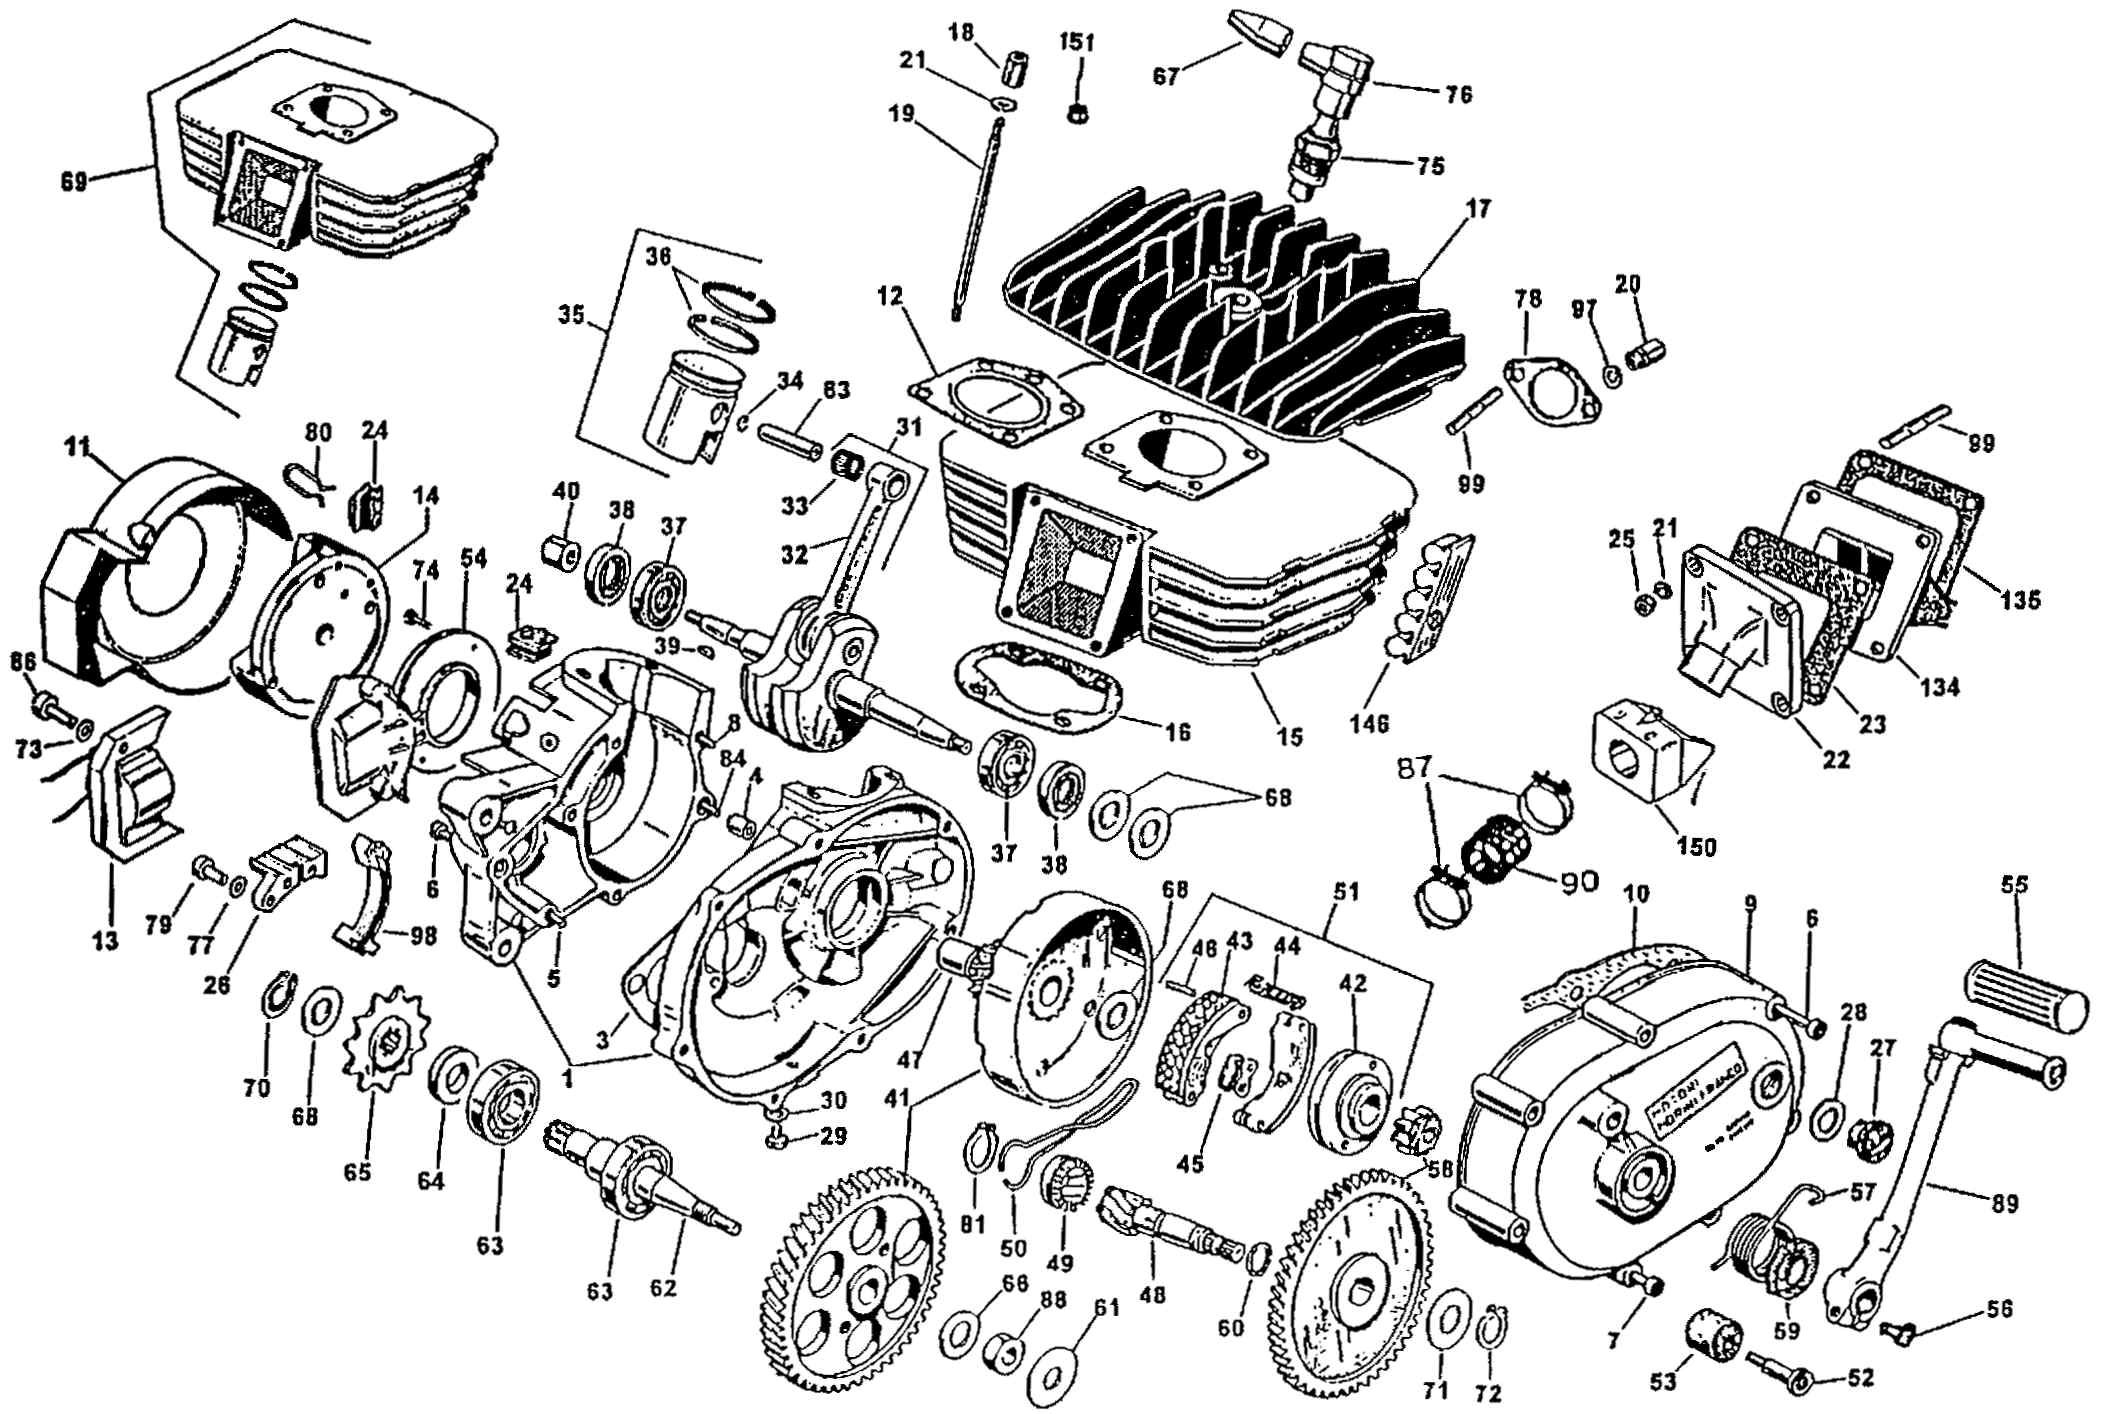 Small 2 cycle engine  Exploded Parts View | Parts